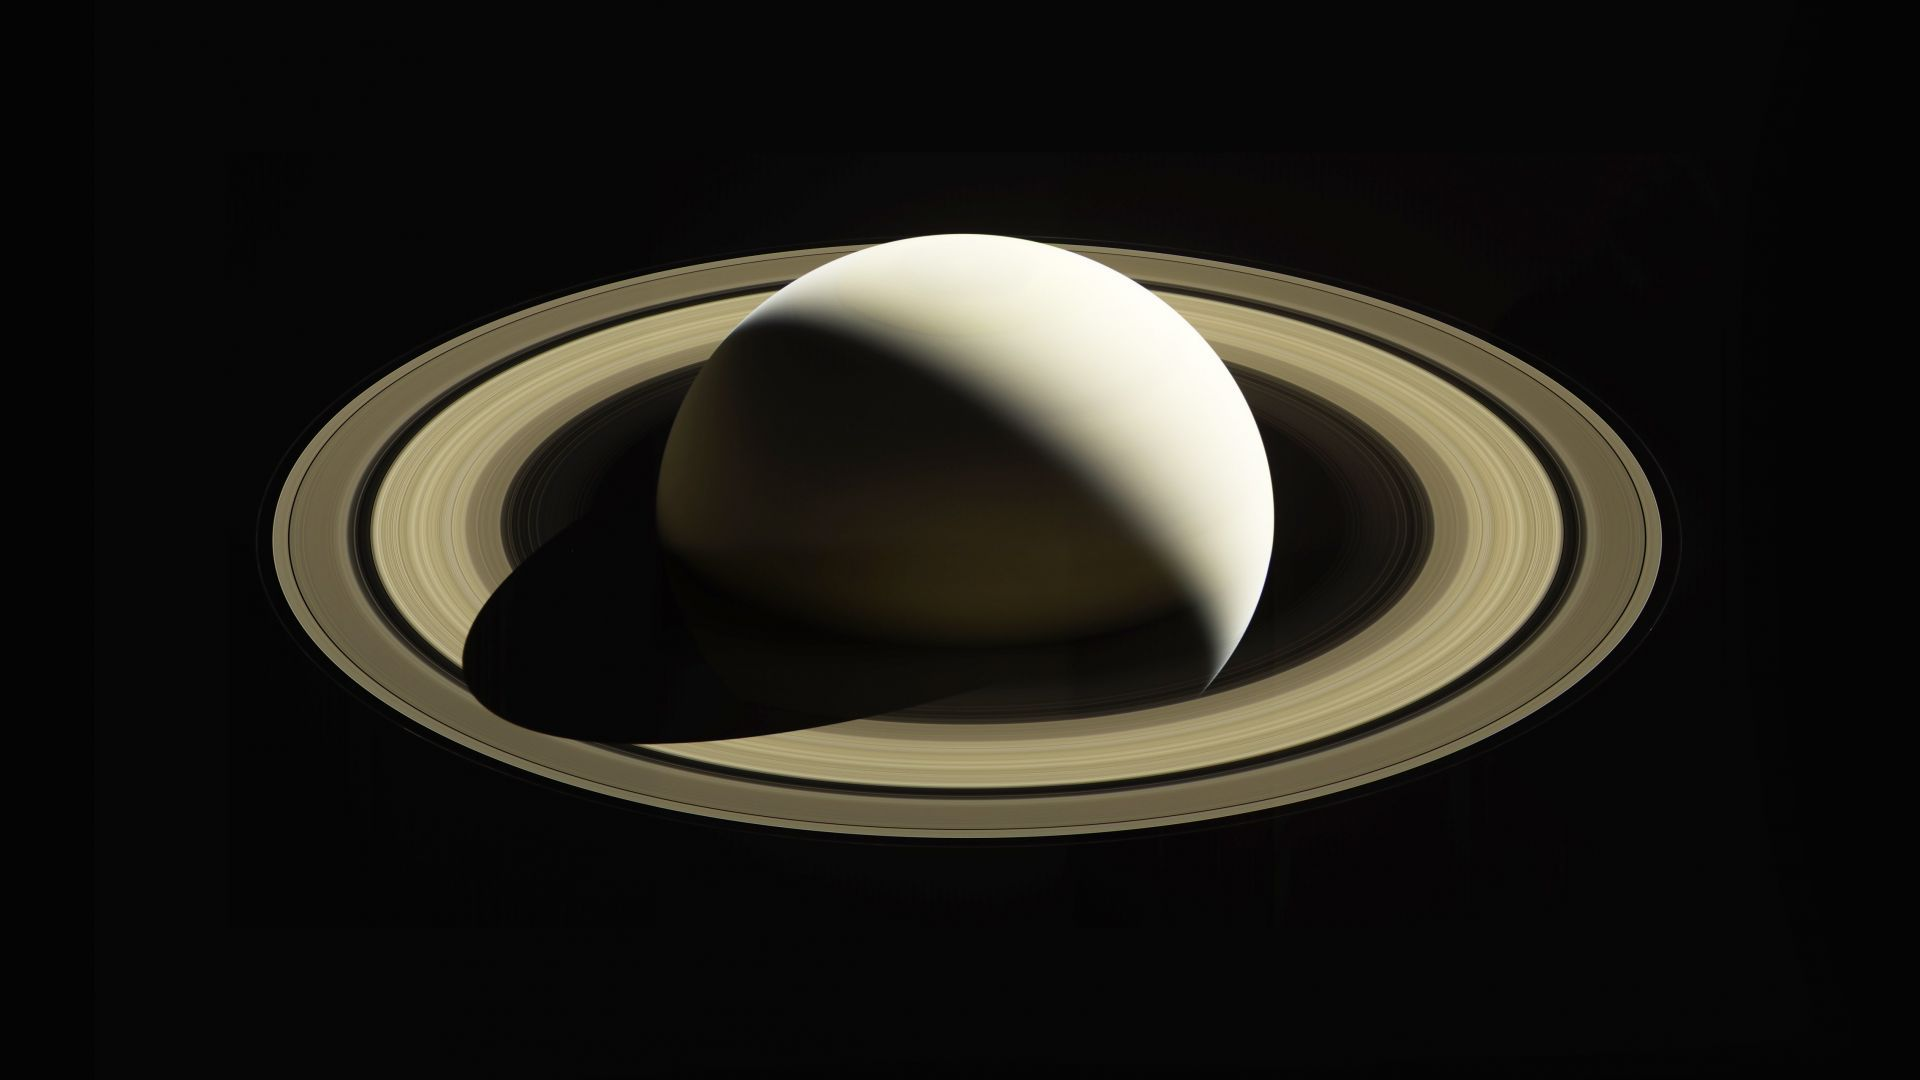 Saturn Planet Cassini Nasa Rings Of Saturn 4k Wallpapers